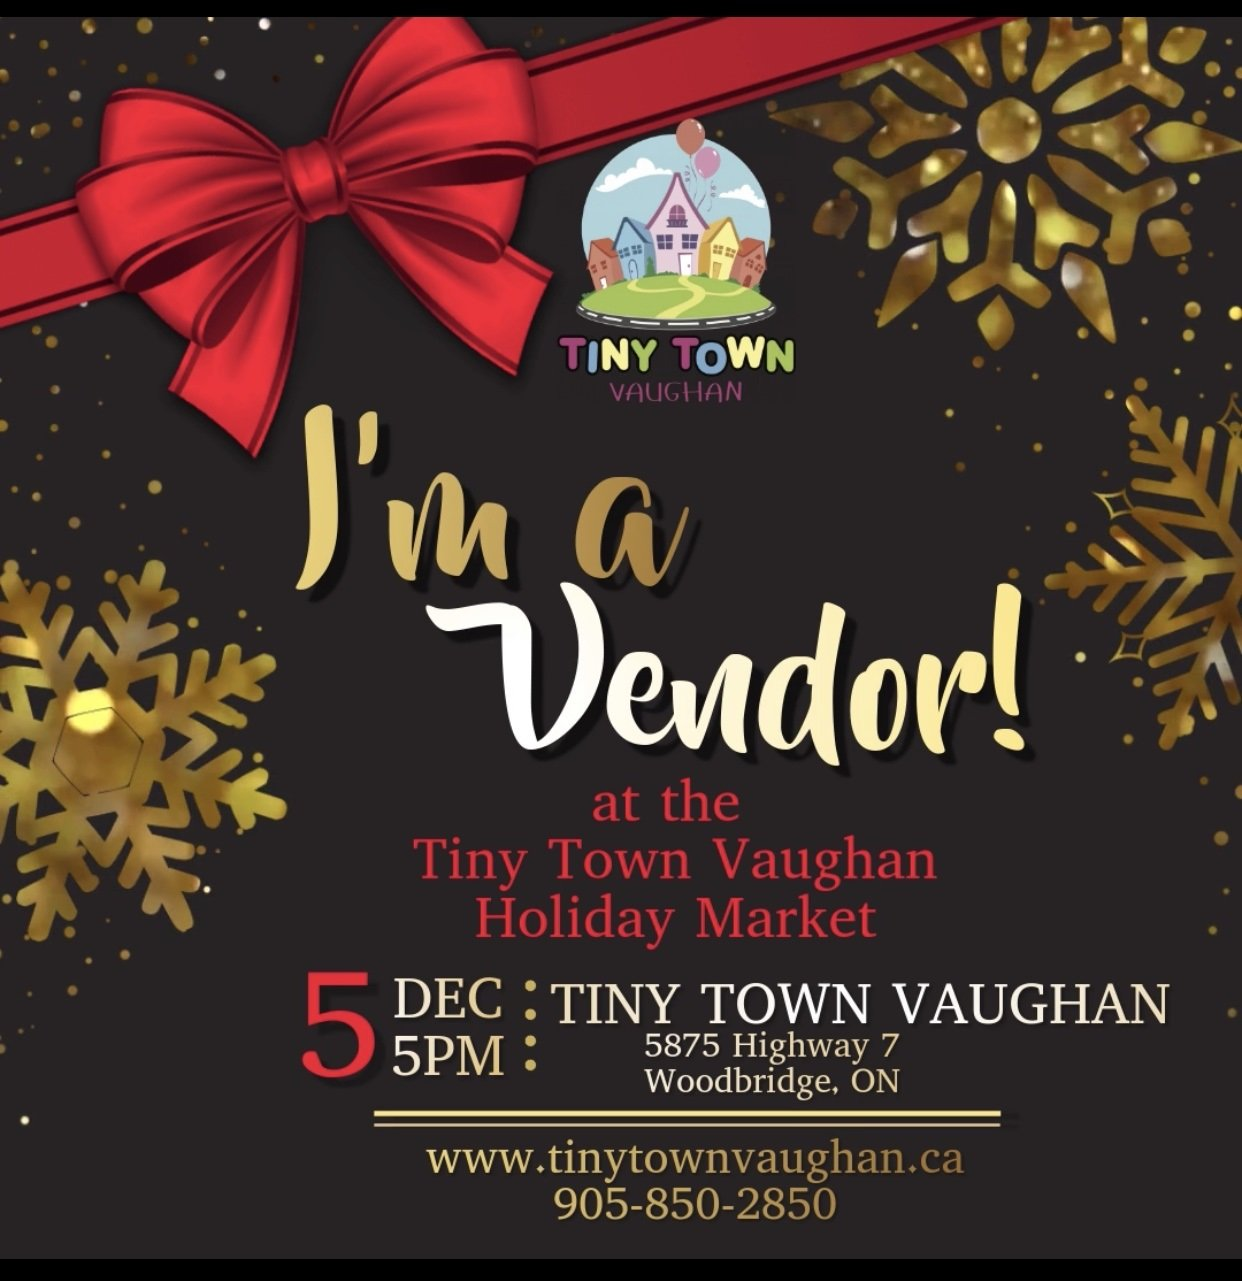 We're at Tiny Town Vaughan!